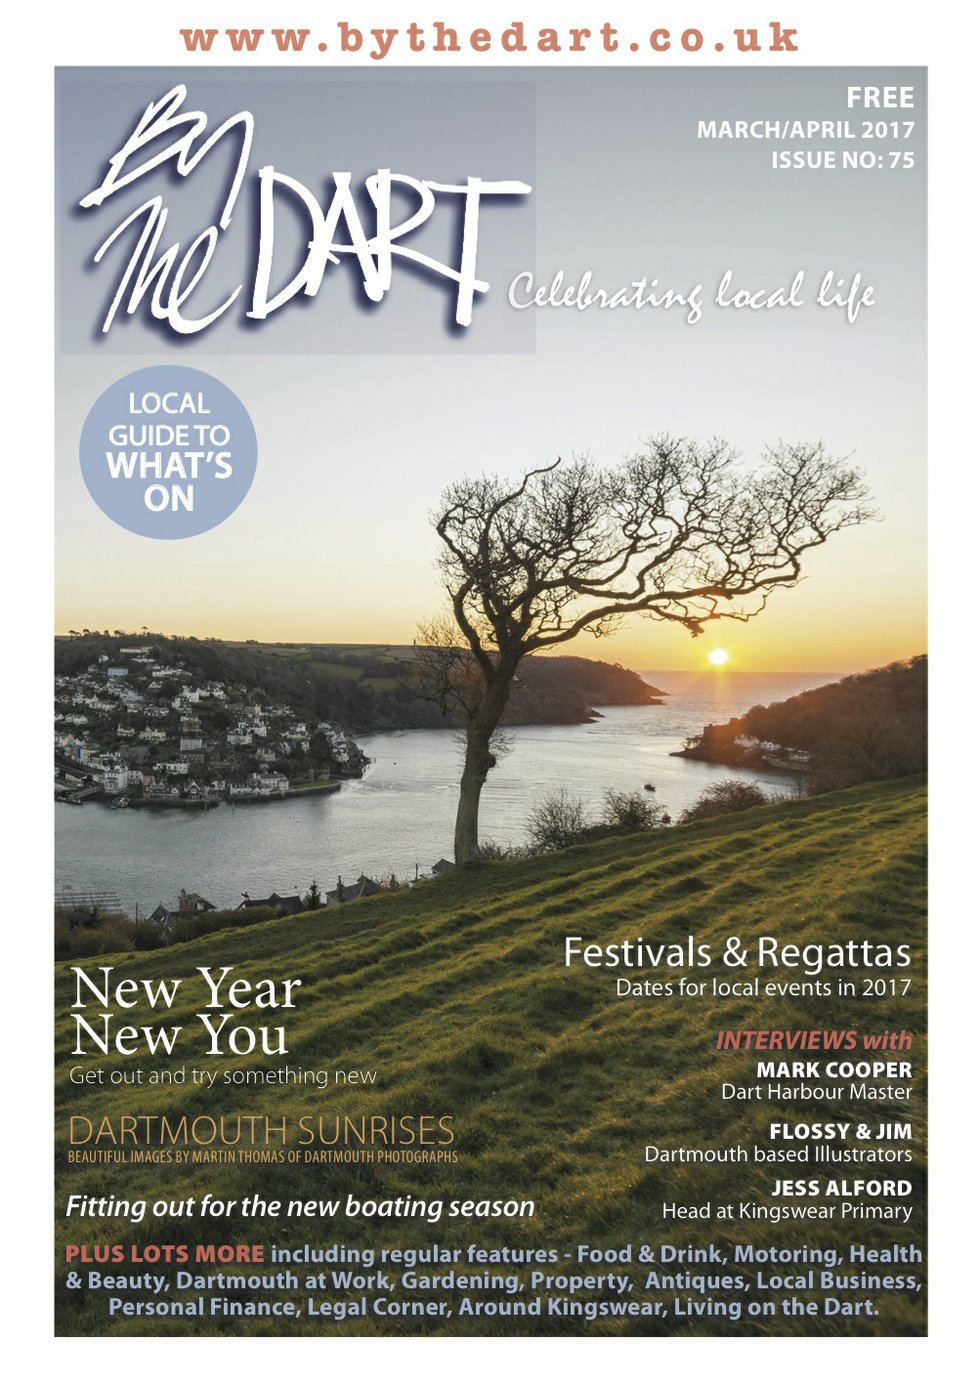 By The Dart March 2017 issue